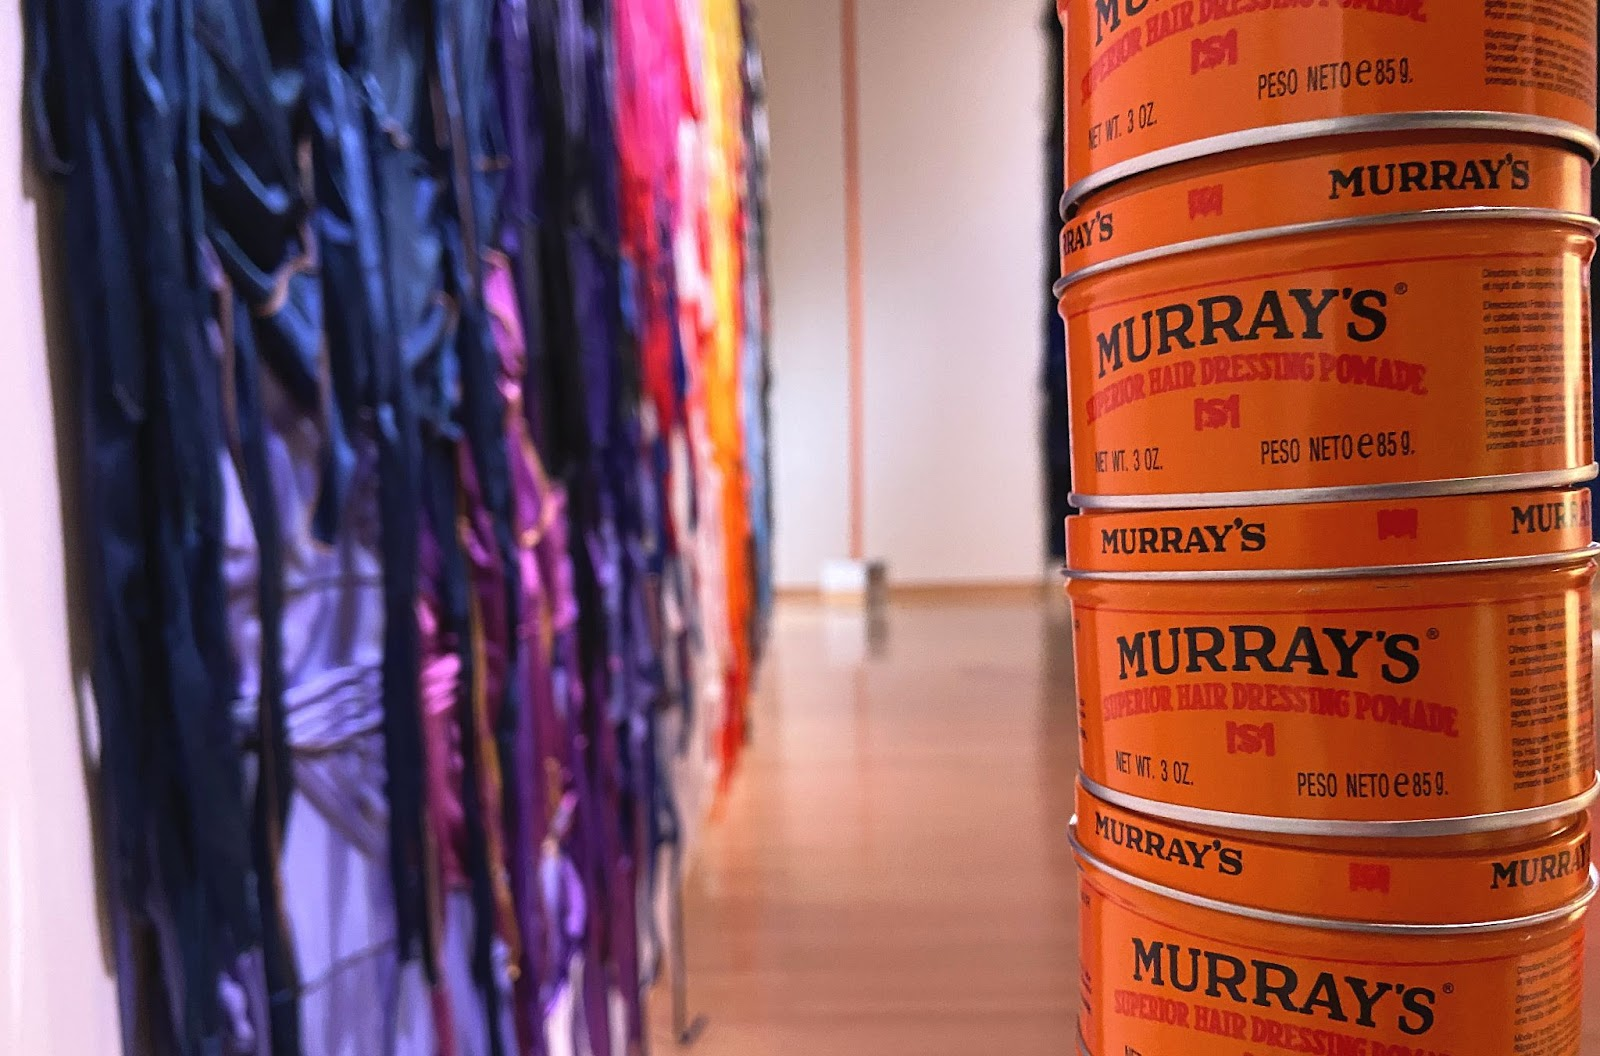 Image: On the right, a detail of a totem sculpture made of stacked Murray's Superior Hair Dressing Pomade cans. The cans are orange, with black and red text. On the left, an out-of-focus view of a colorful durag painting, and another totem sculpture. Photo by Jessica Hammie.